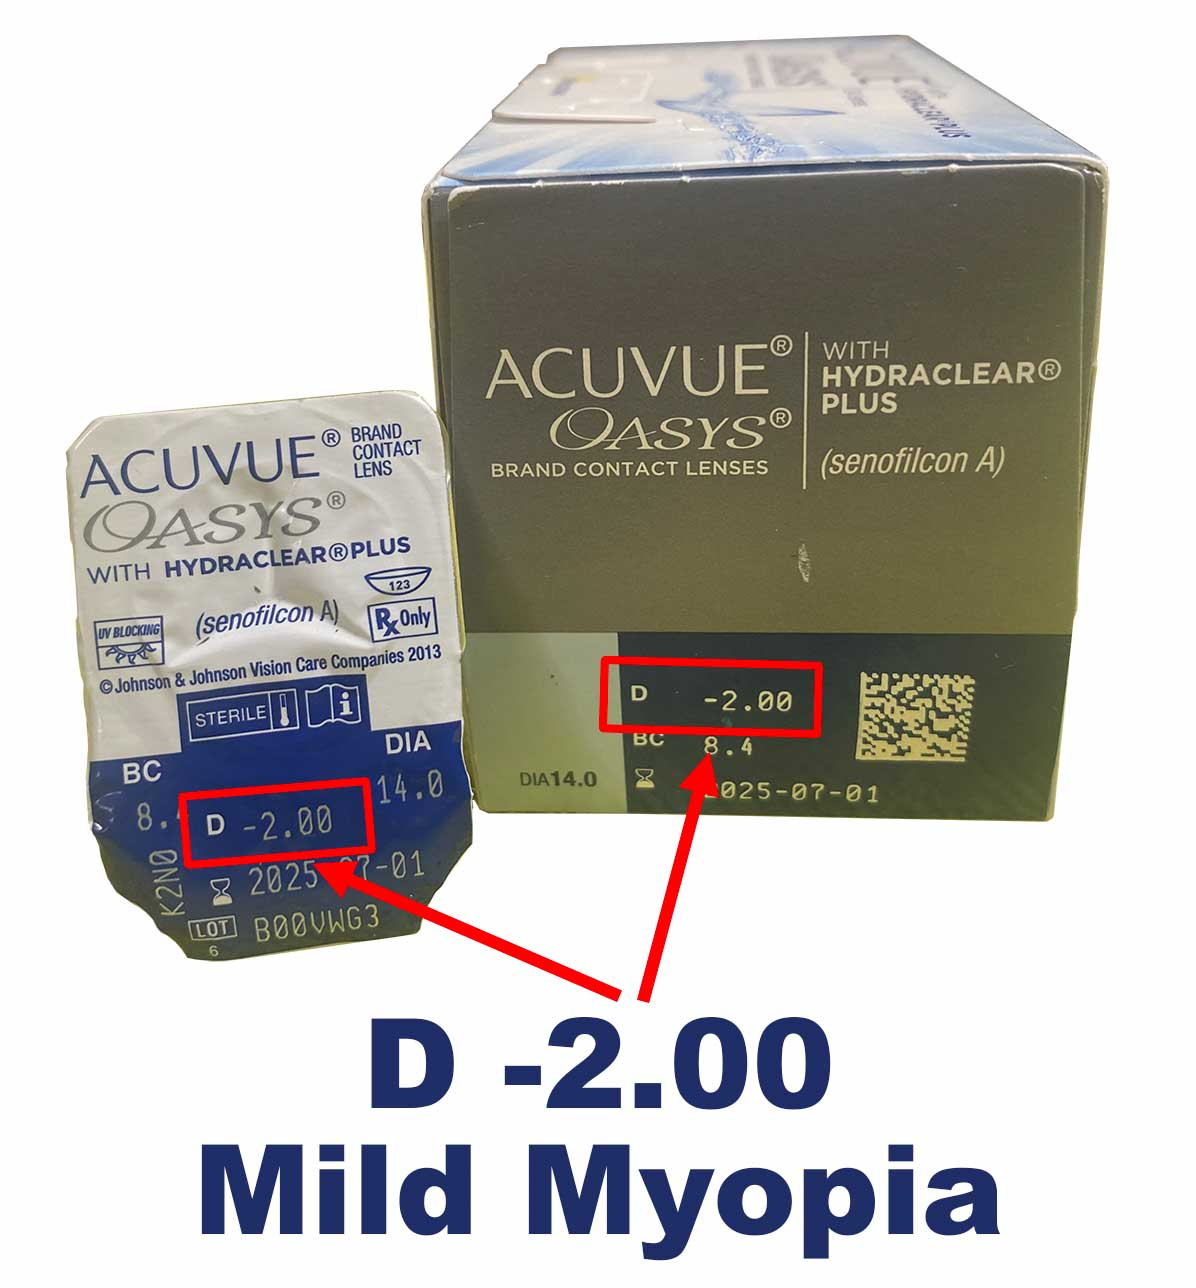 contact lens packaging illustrating how to check how bad your myopia is. text reads